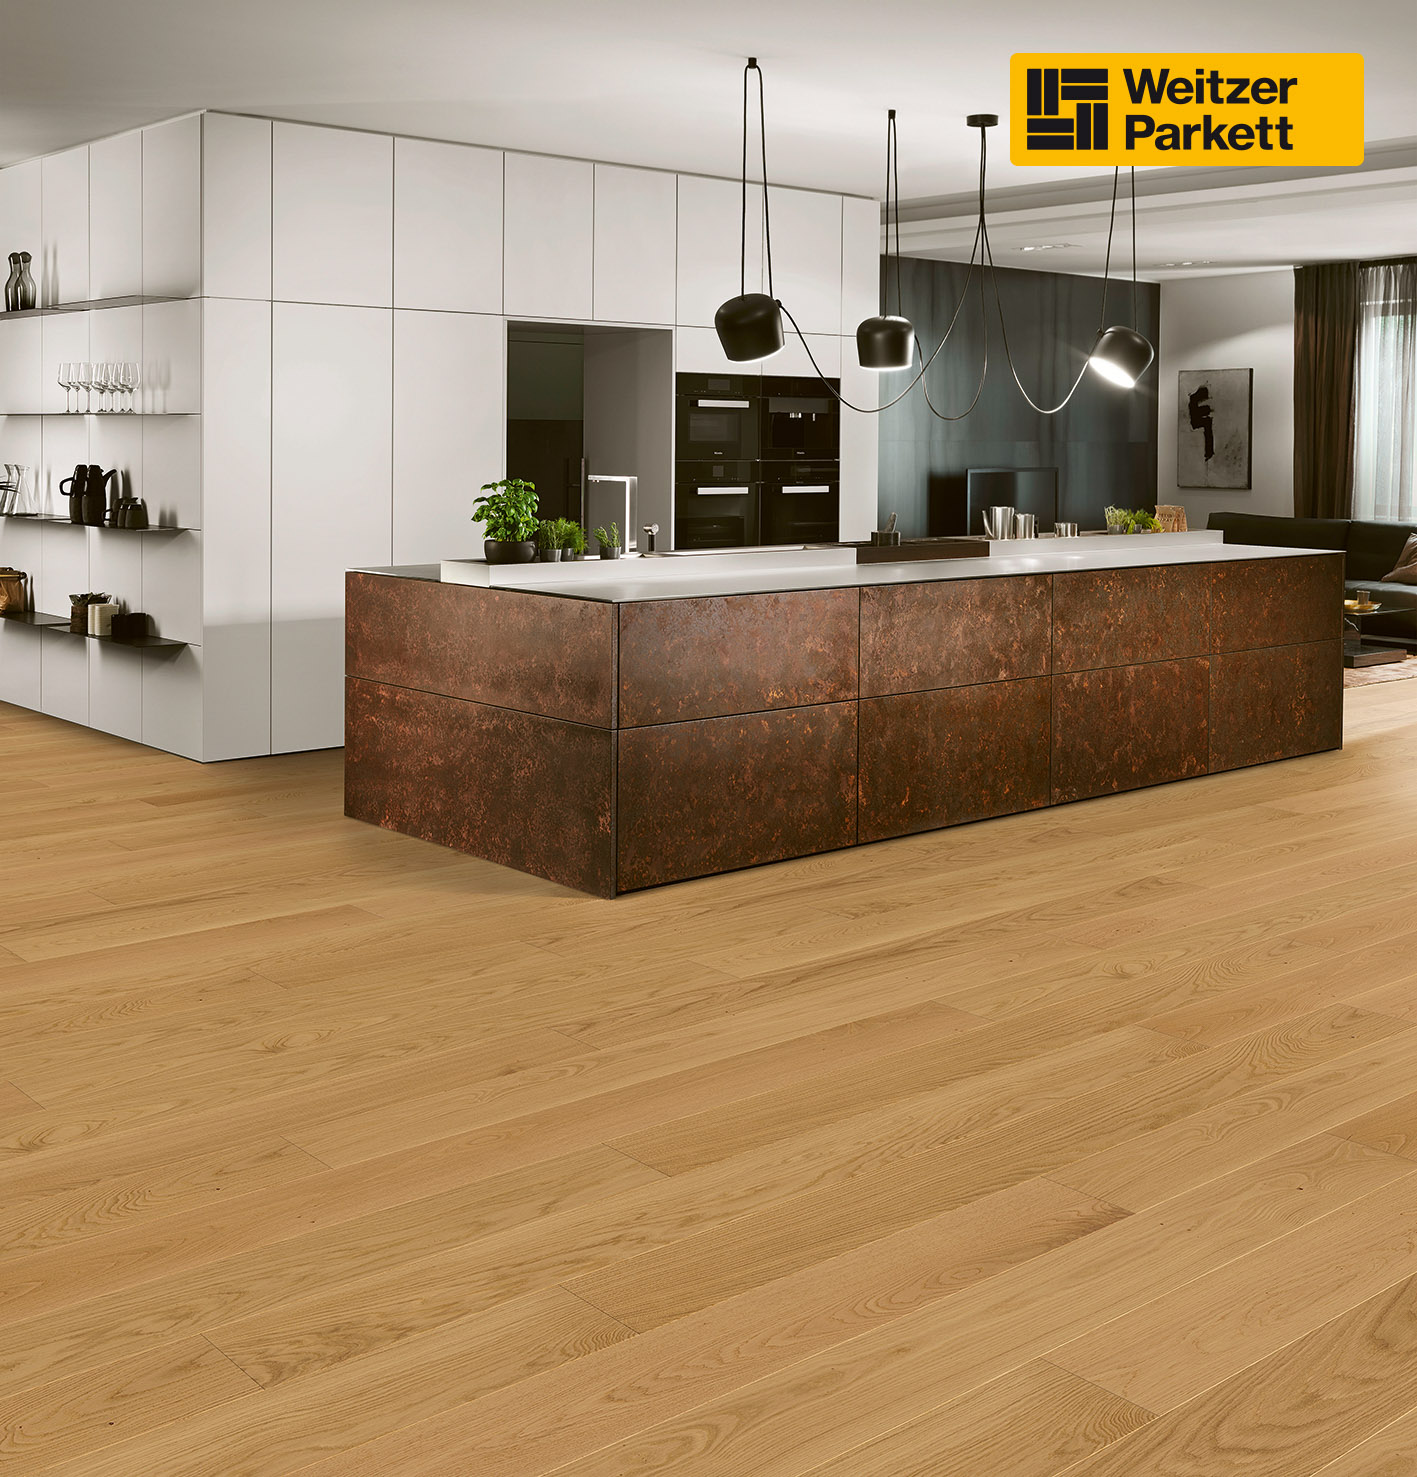 Plank-Appearance_Quadra_Oak_calm_bevelled_brushed_PA+_27785.jpg